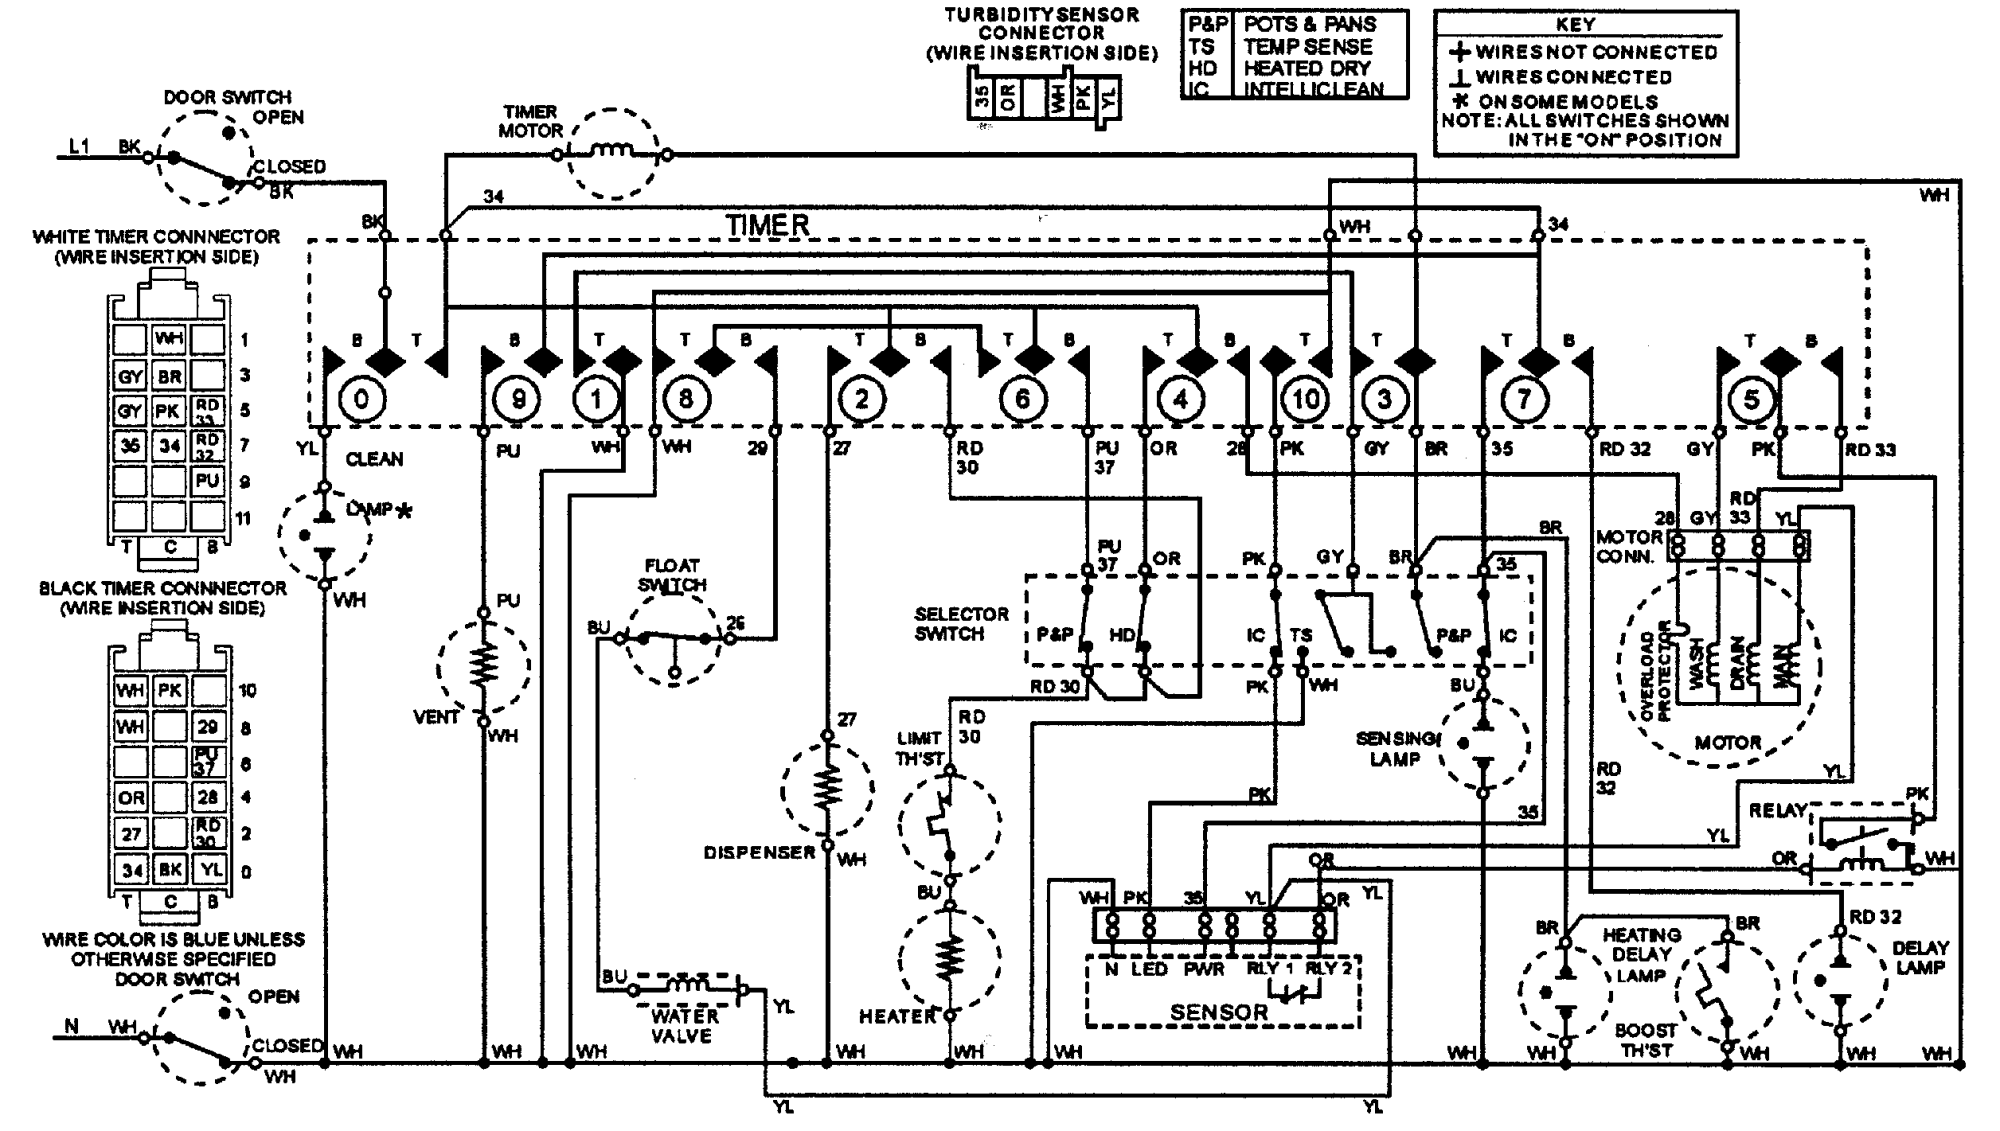 hight resolution of whirlpool dishwasher electrical diagram wiring diagram expert bosch dishwasher wiring diagram dishwasher wiring diagram